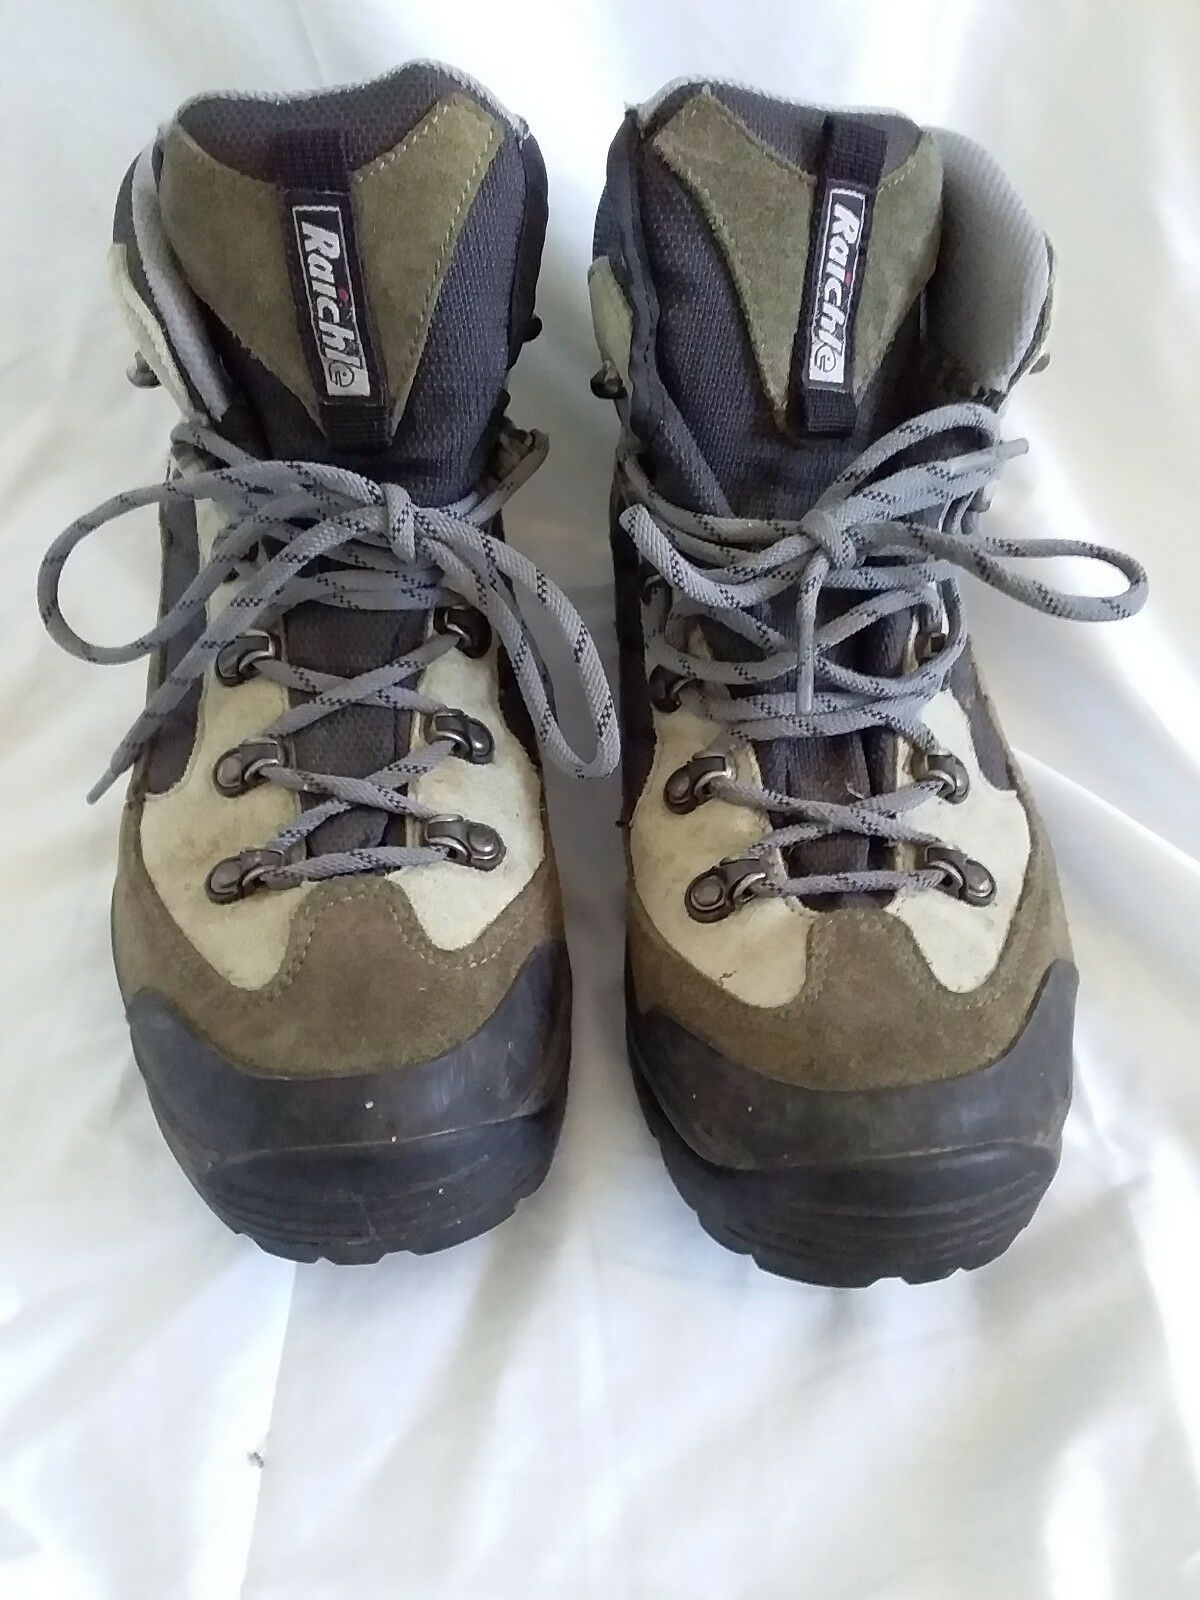 Reichle Scout GTX LS goretex boots vibram soles size 7US   best prices and freshest styles